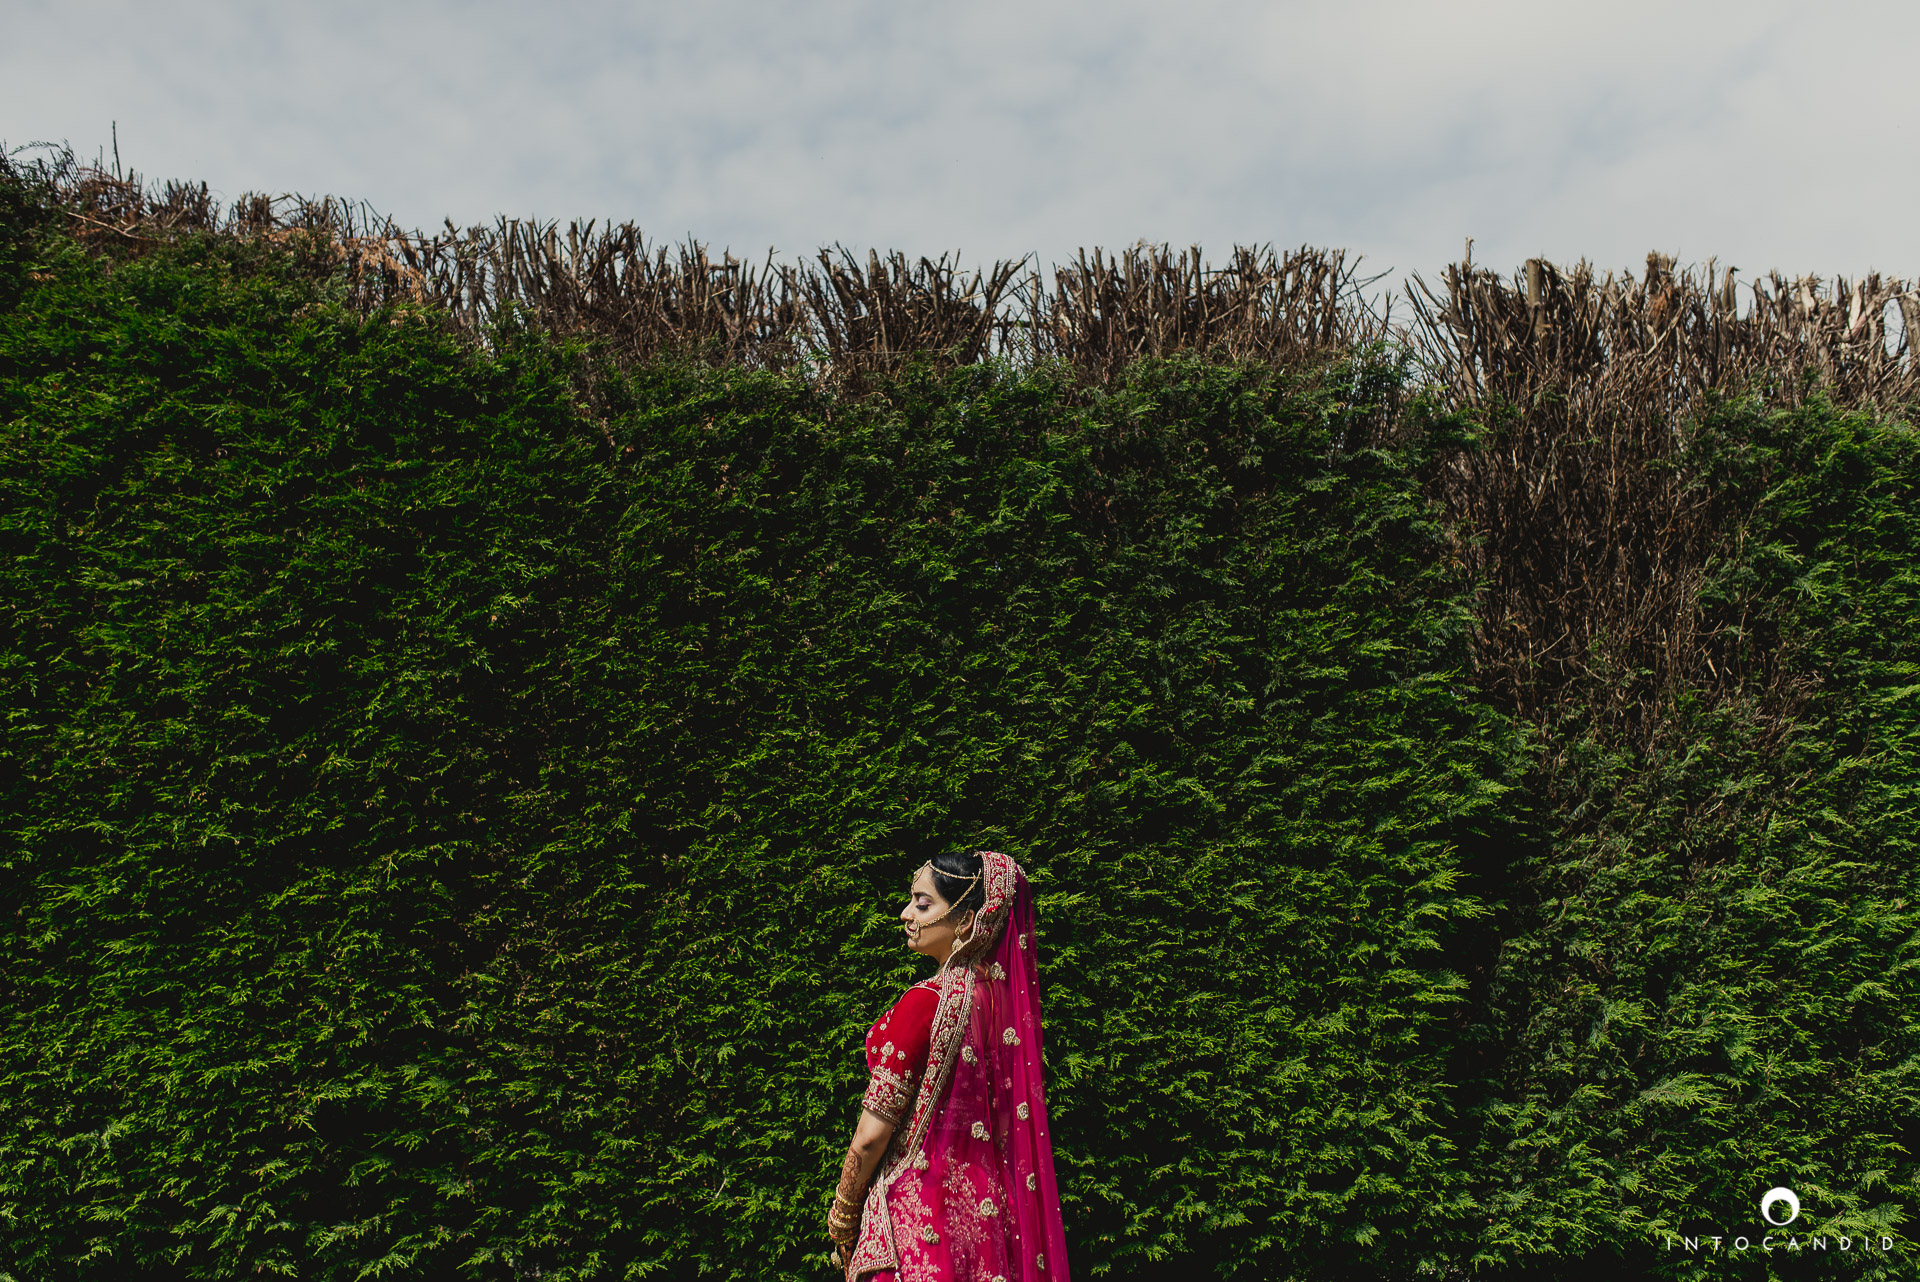 London_Wedding_Photographer_Intocandid_Photography_Ketan & Manasvi_34.JPG